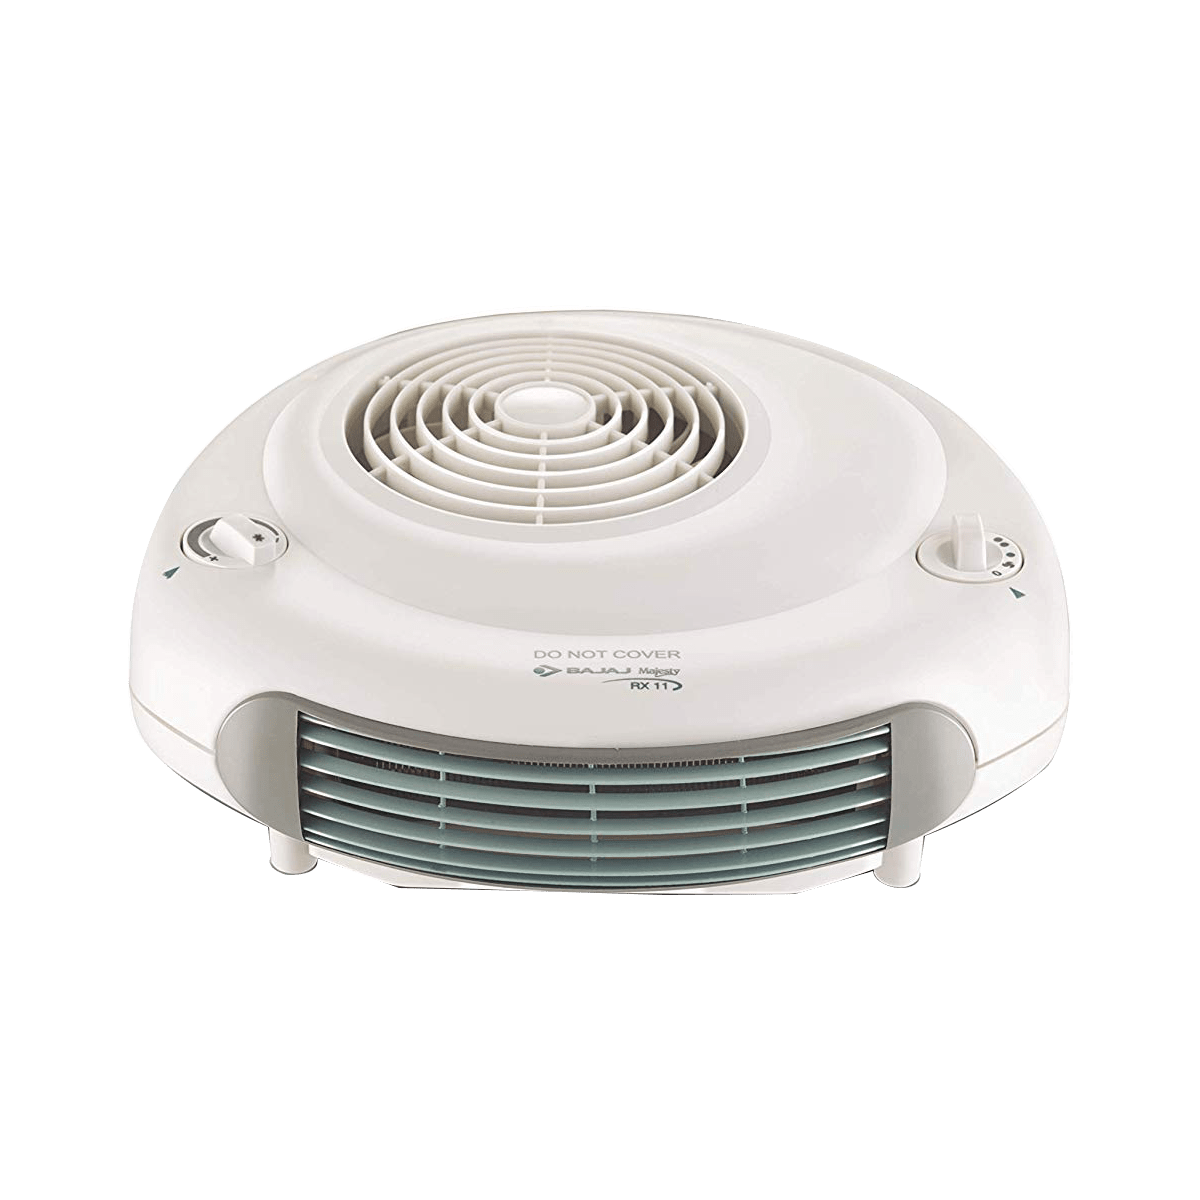 Bajaj Majesty 2000 Watts Fan Room Heater (Auto Thermal Shutoff, RX11, White)